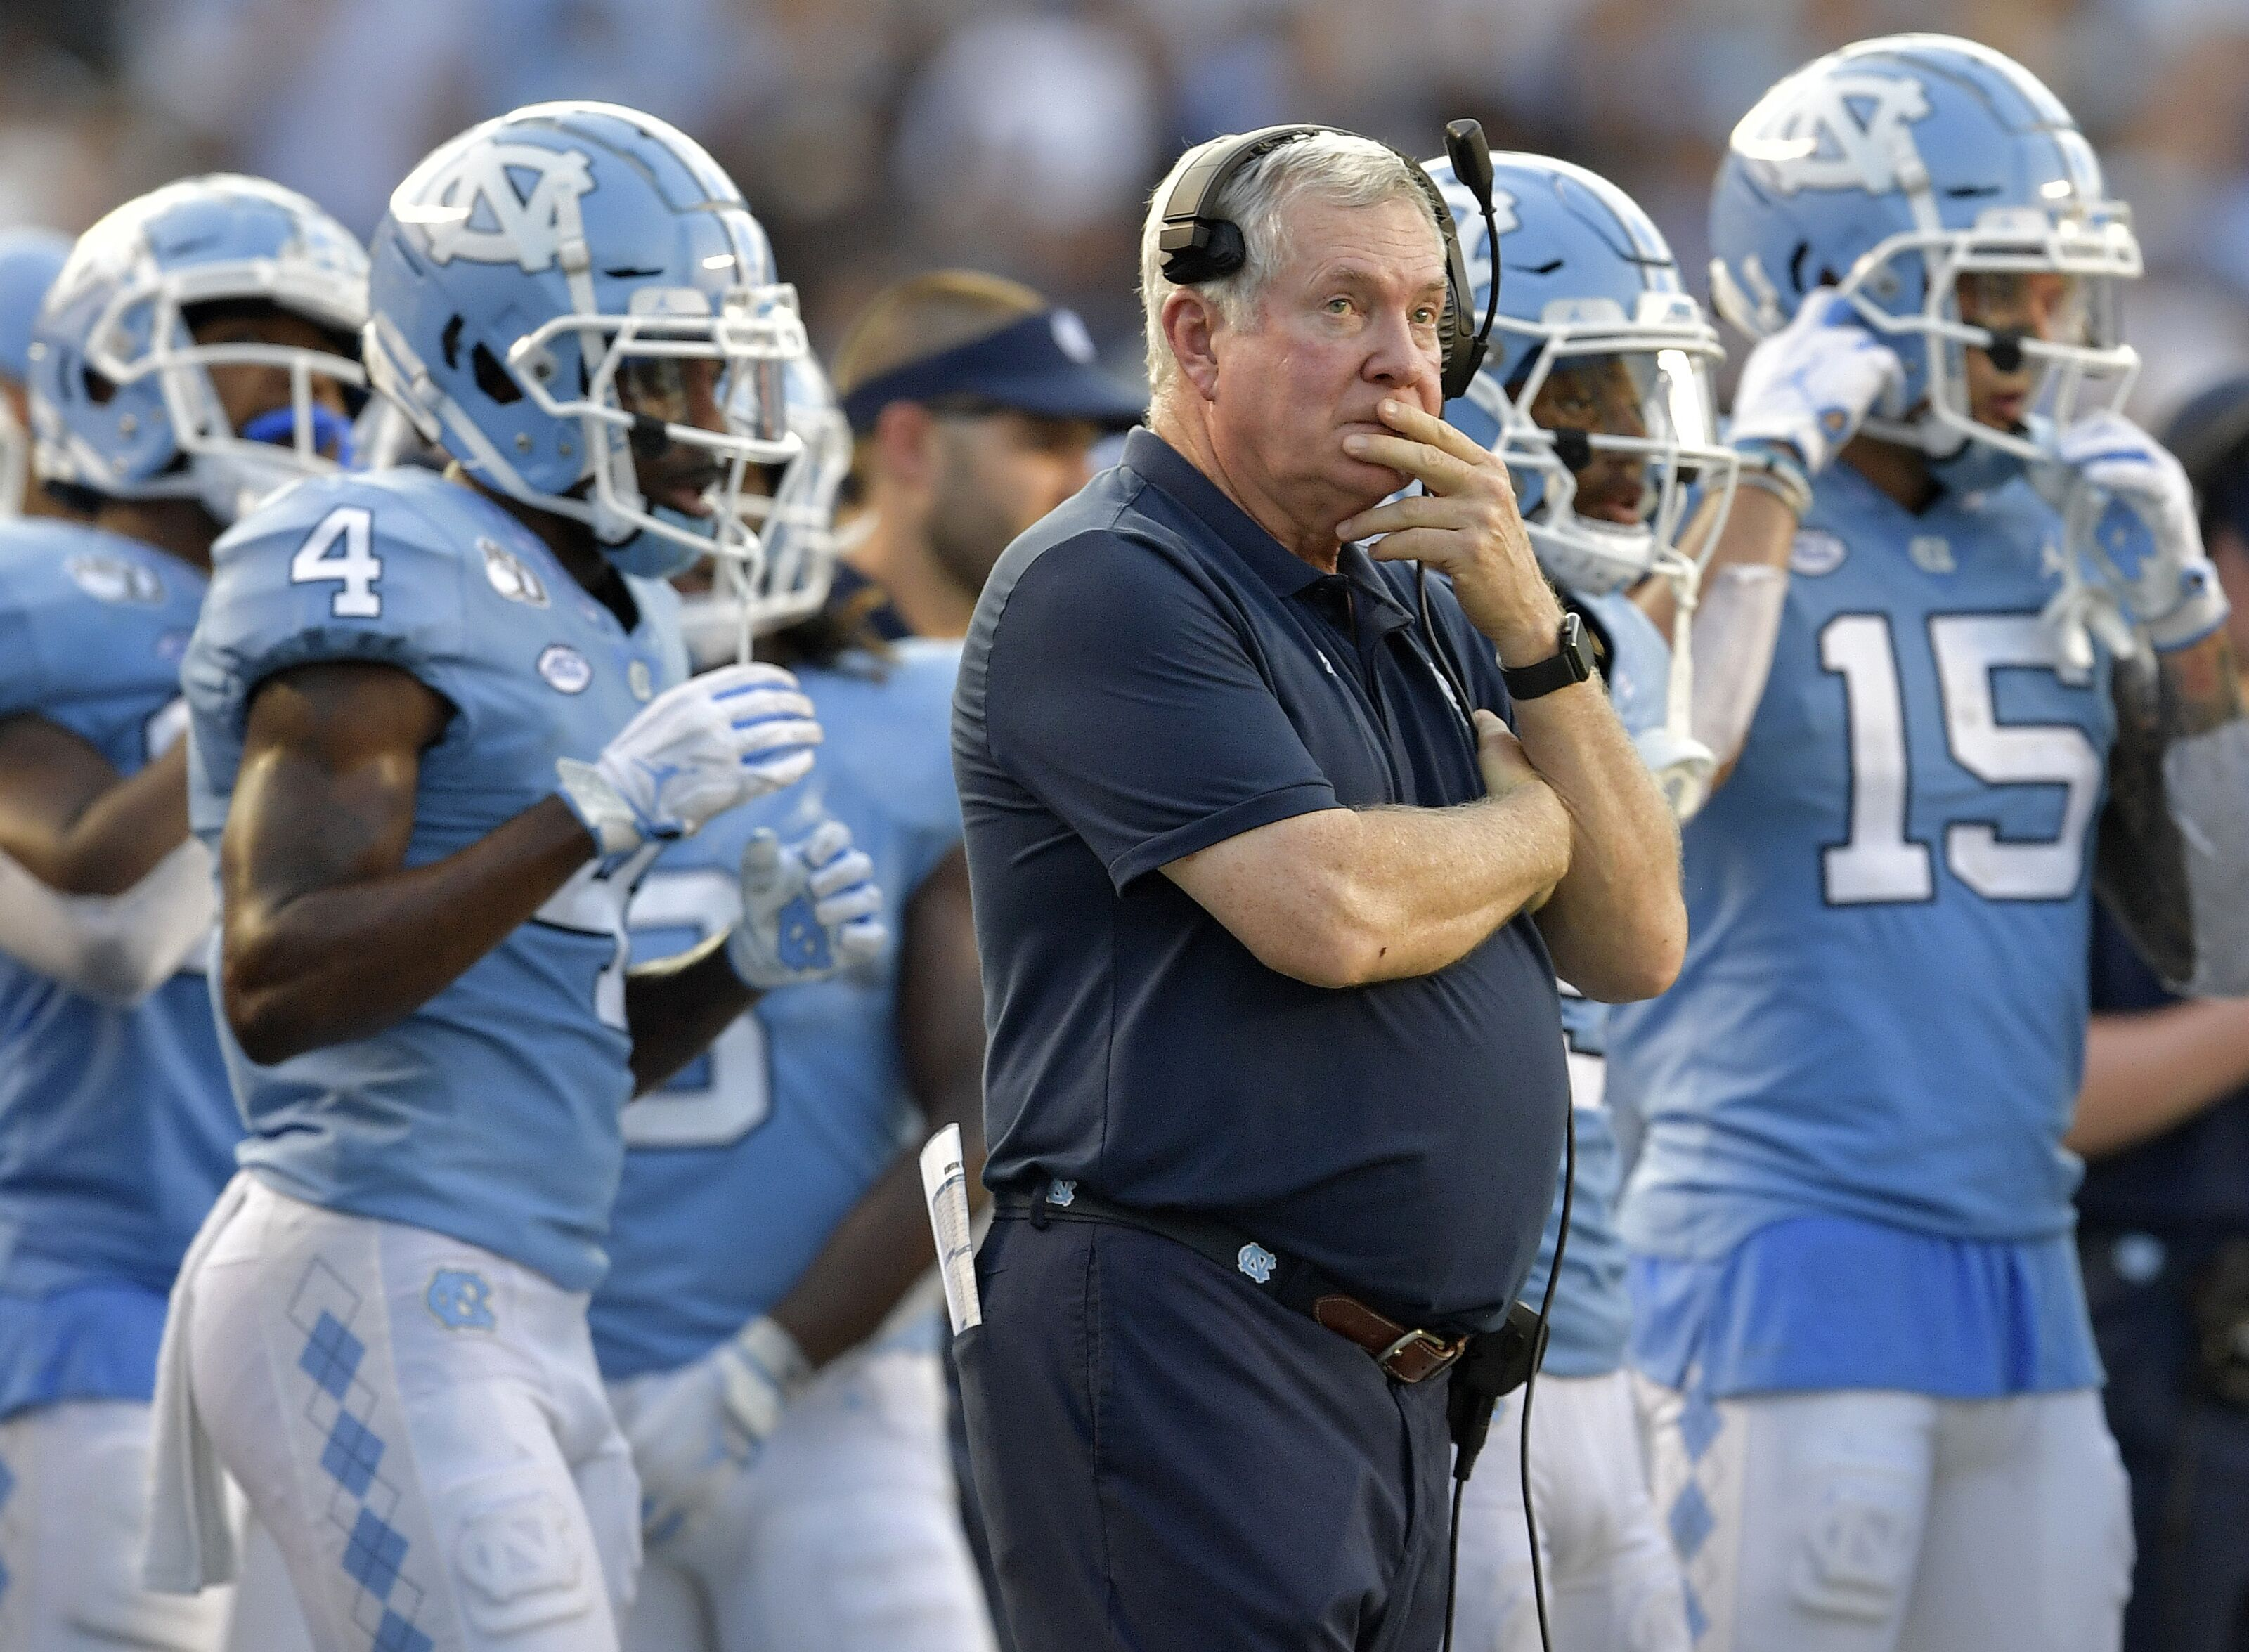 UNC Football: Tar Heels currently hold Top 20 recruiting class